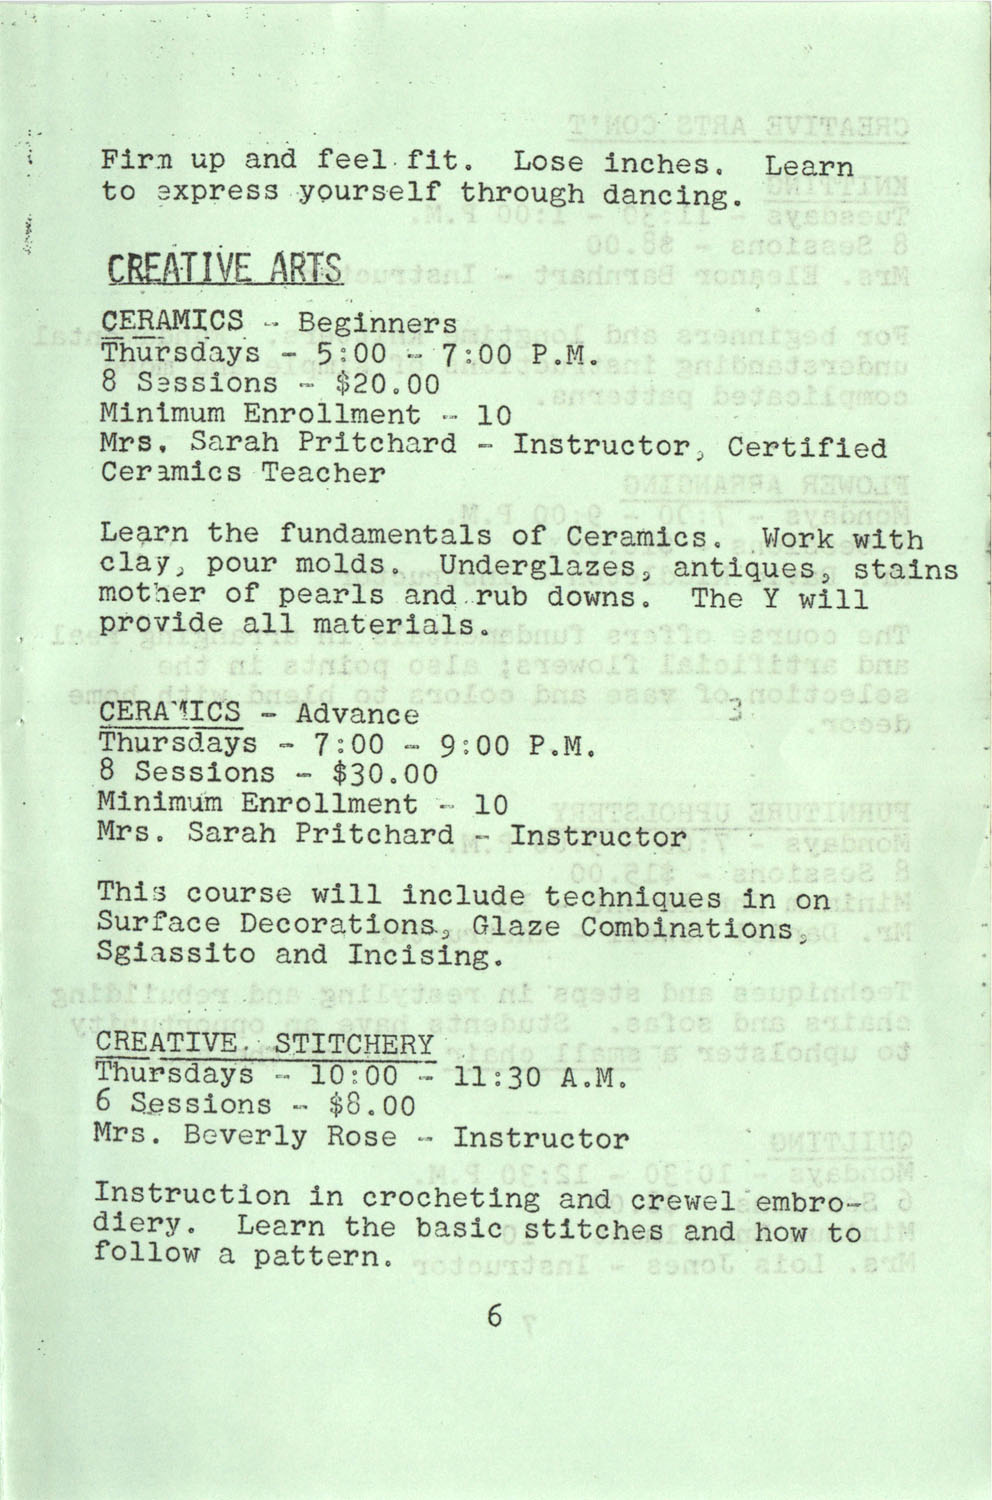 YWCA Spring 1975 Schedule, Page 6